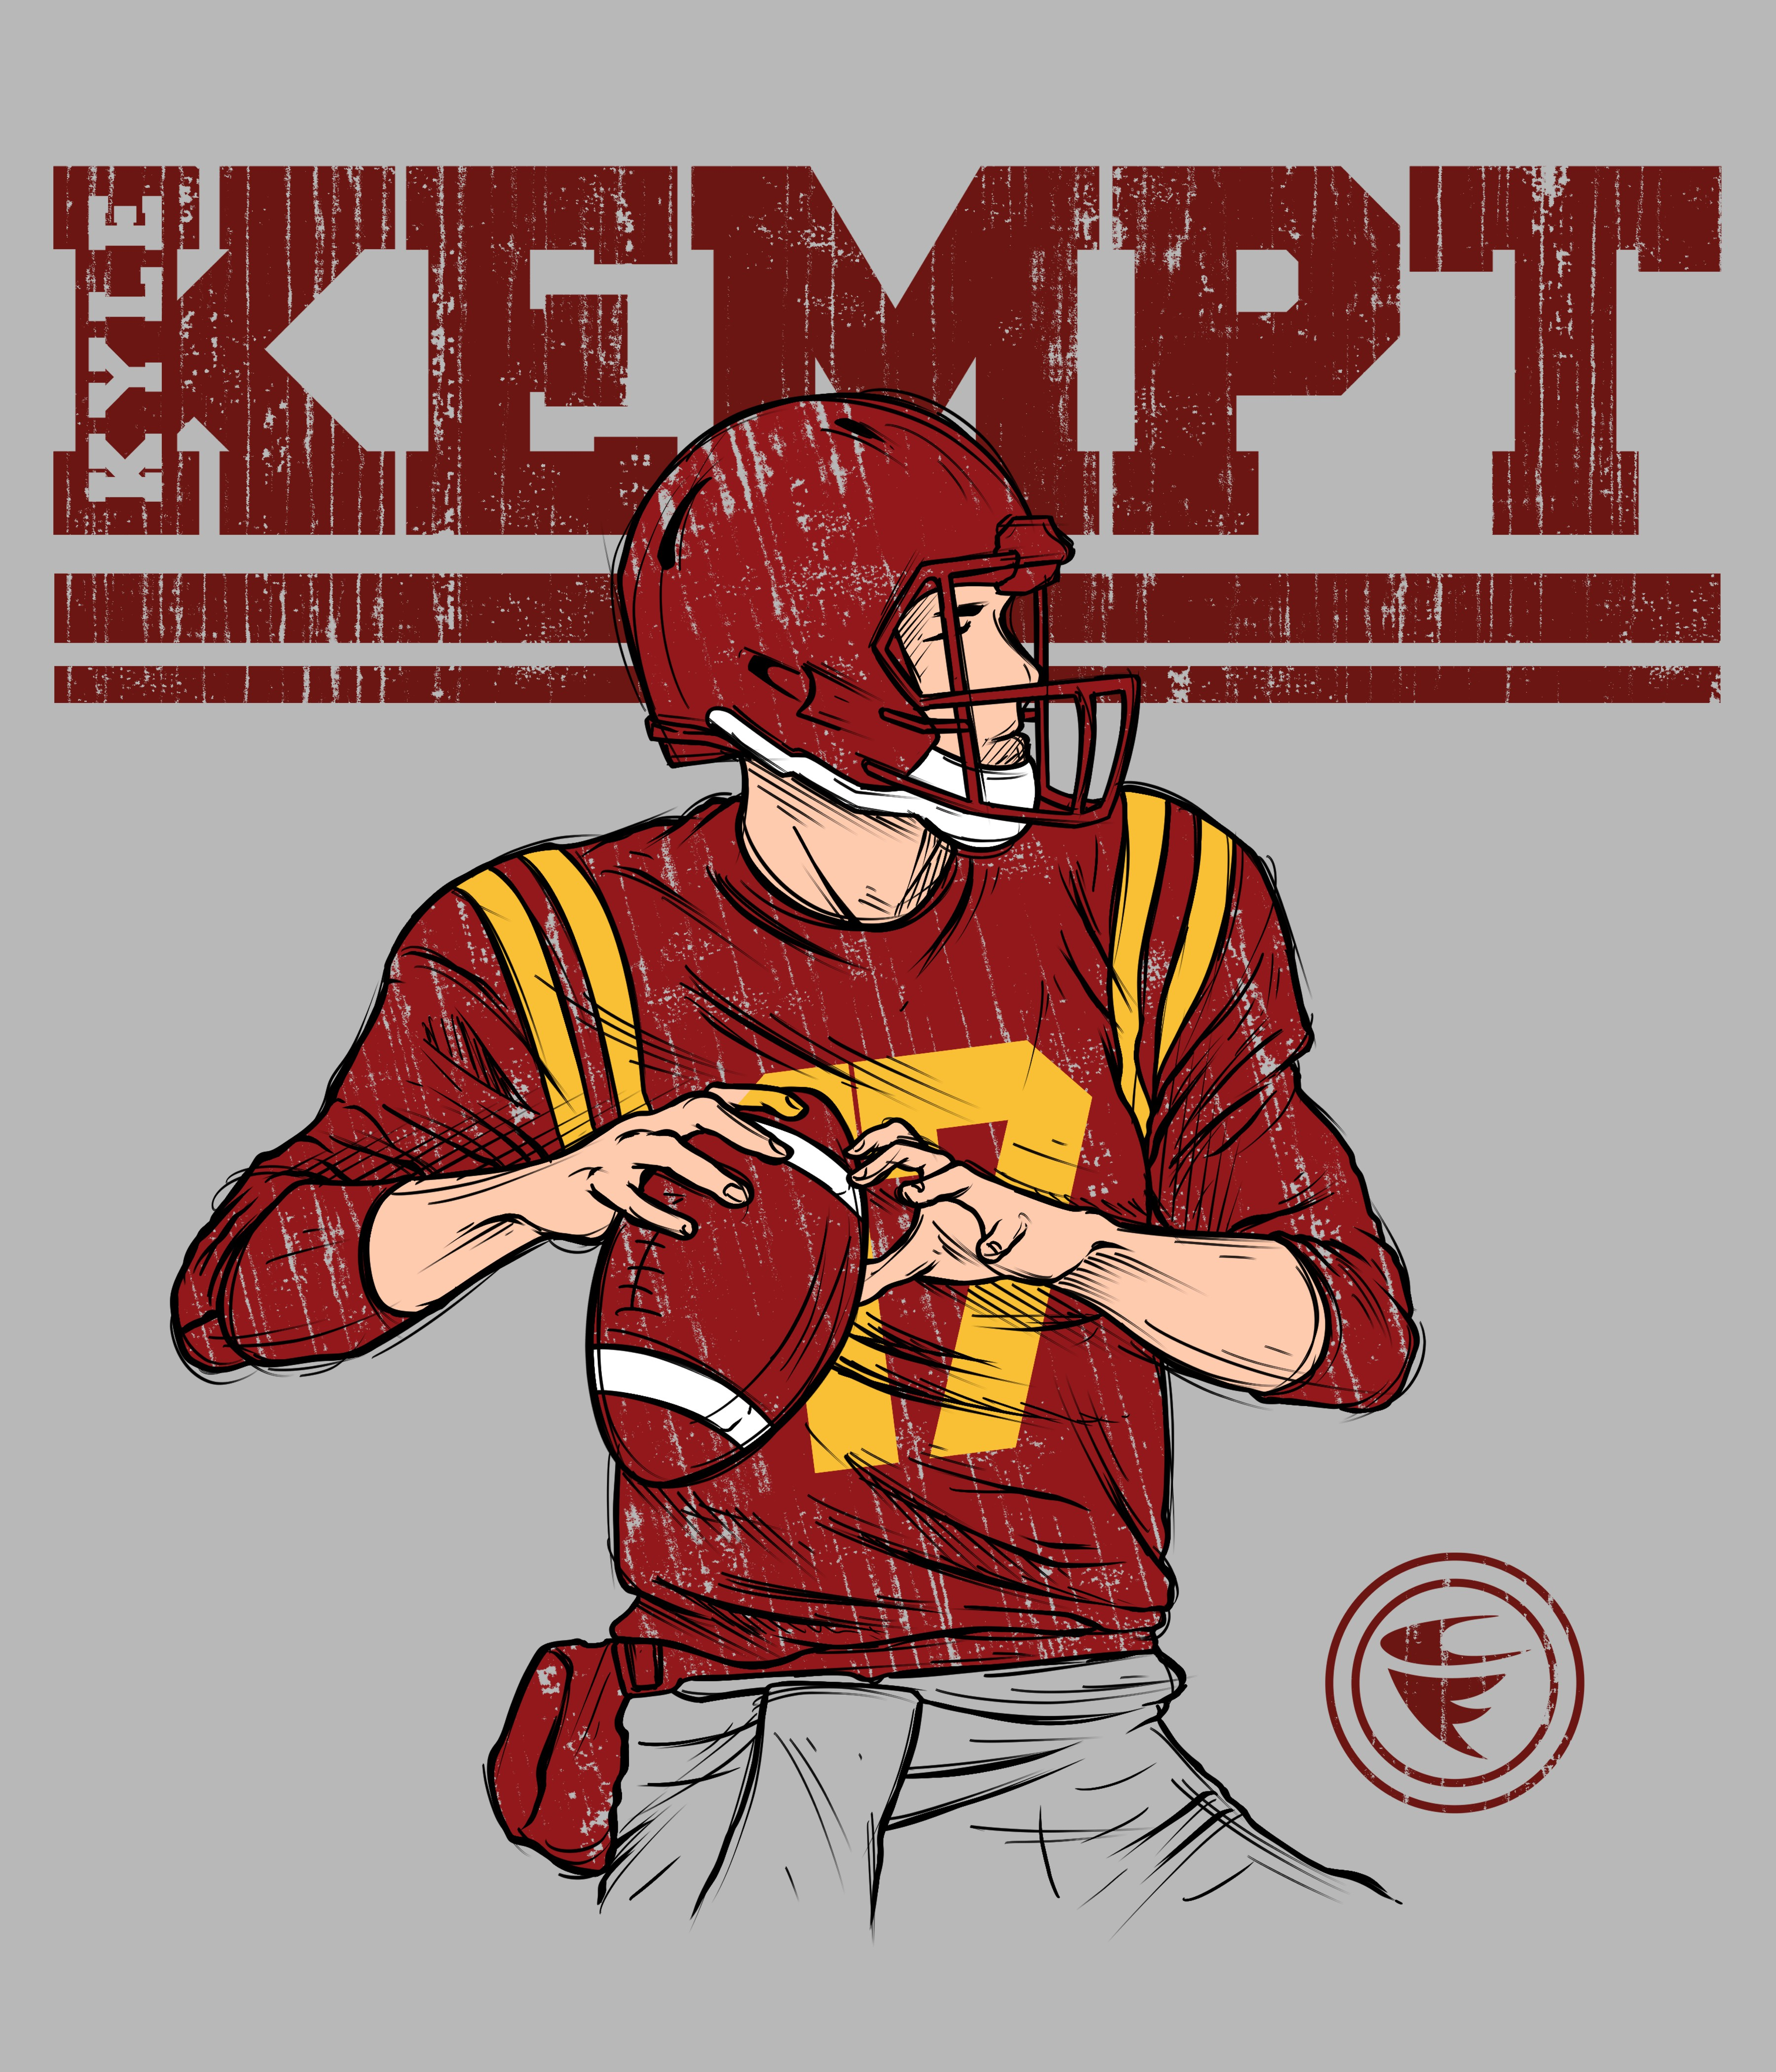 Create a Football Player Inspired Design for a Tee